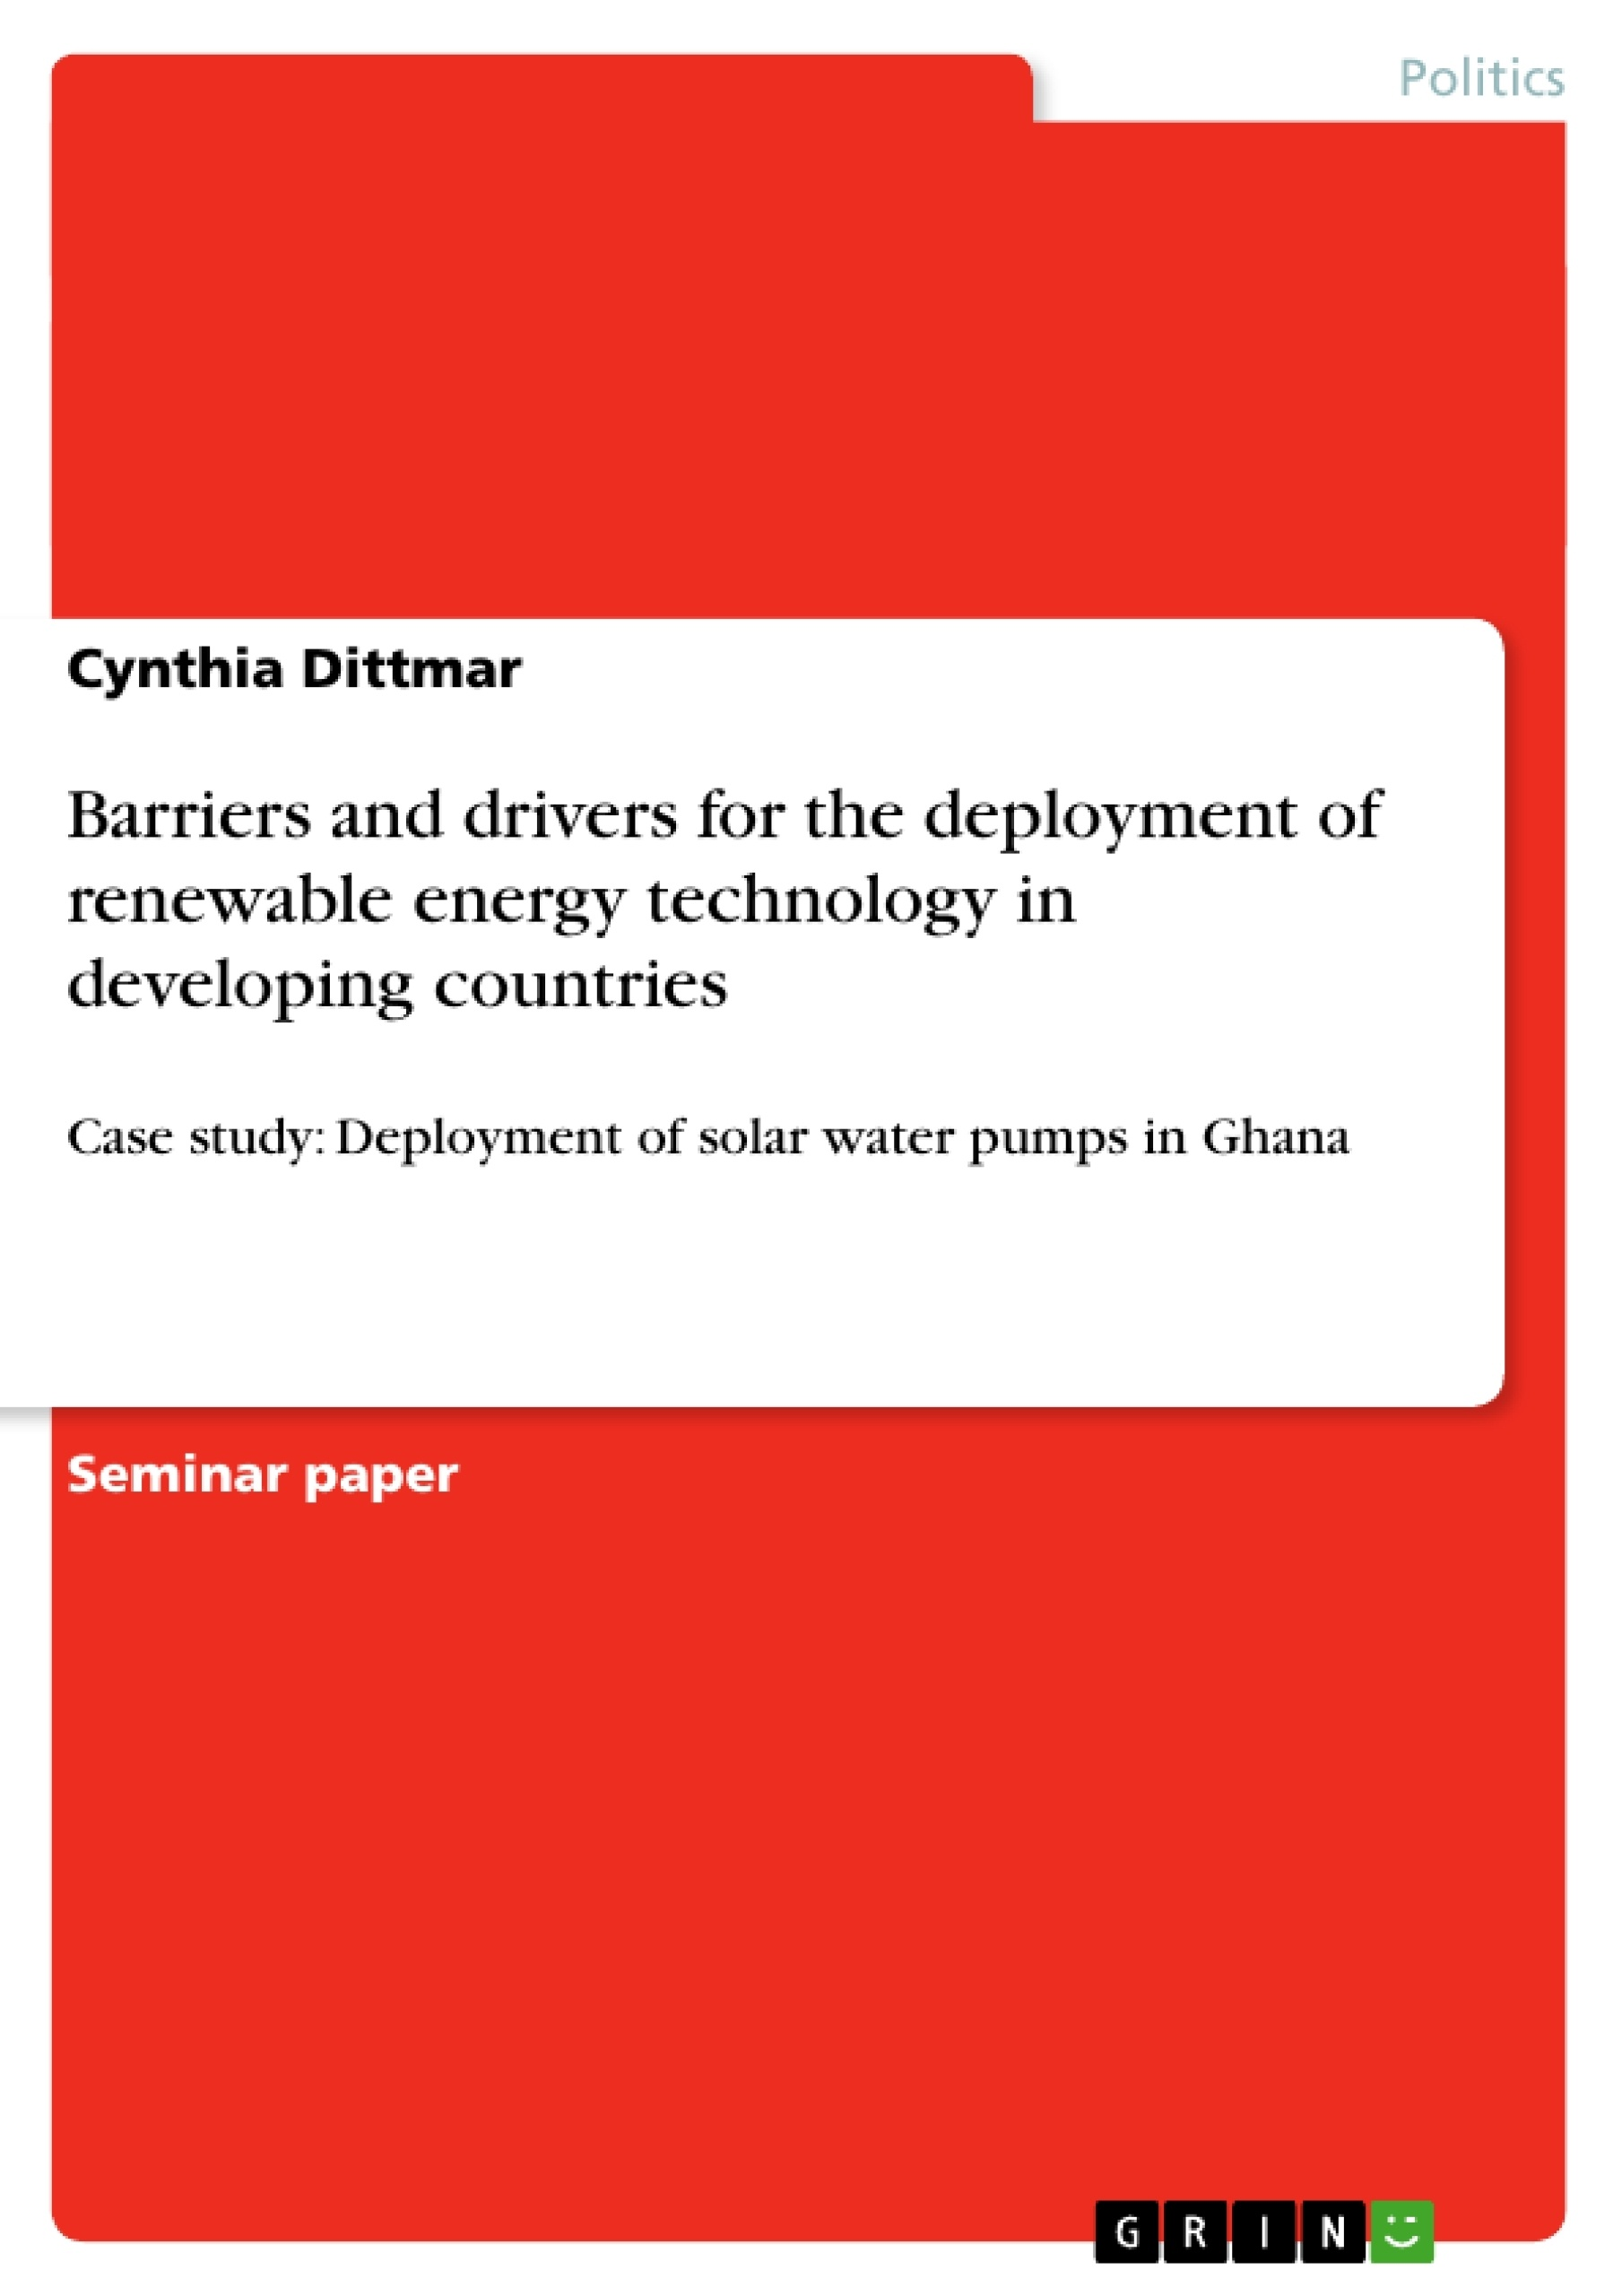 Title: Barriers and drivers for the deployment of renewable energy technology in developing countries